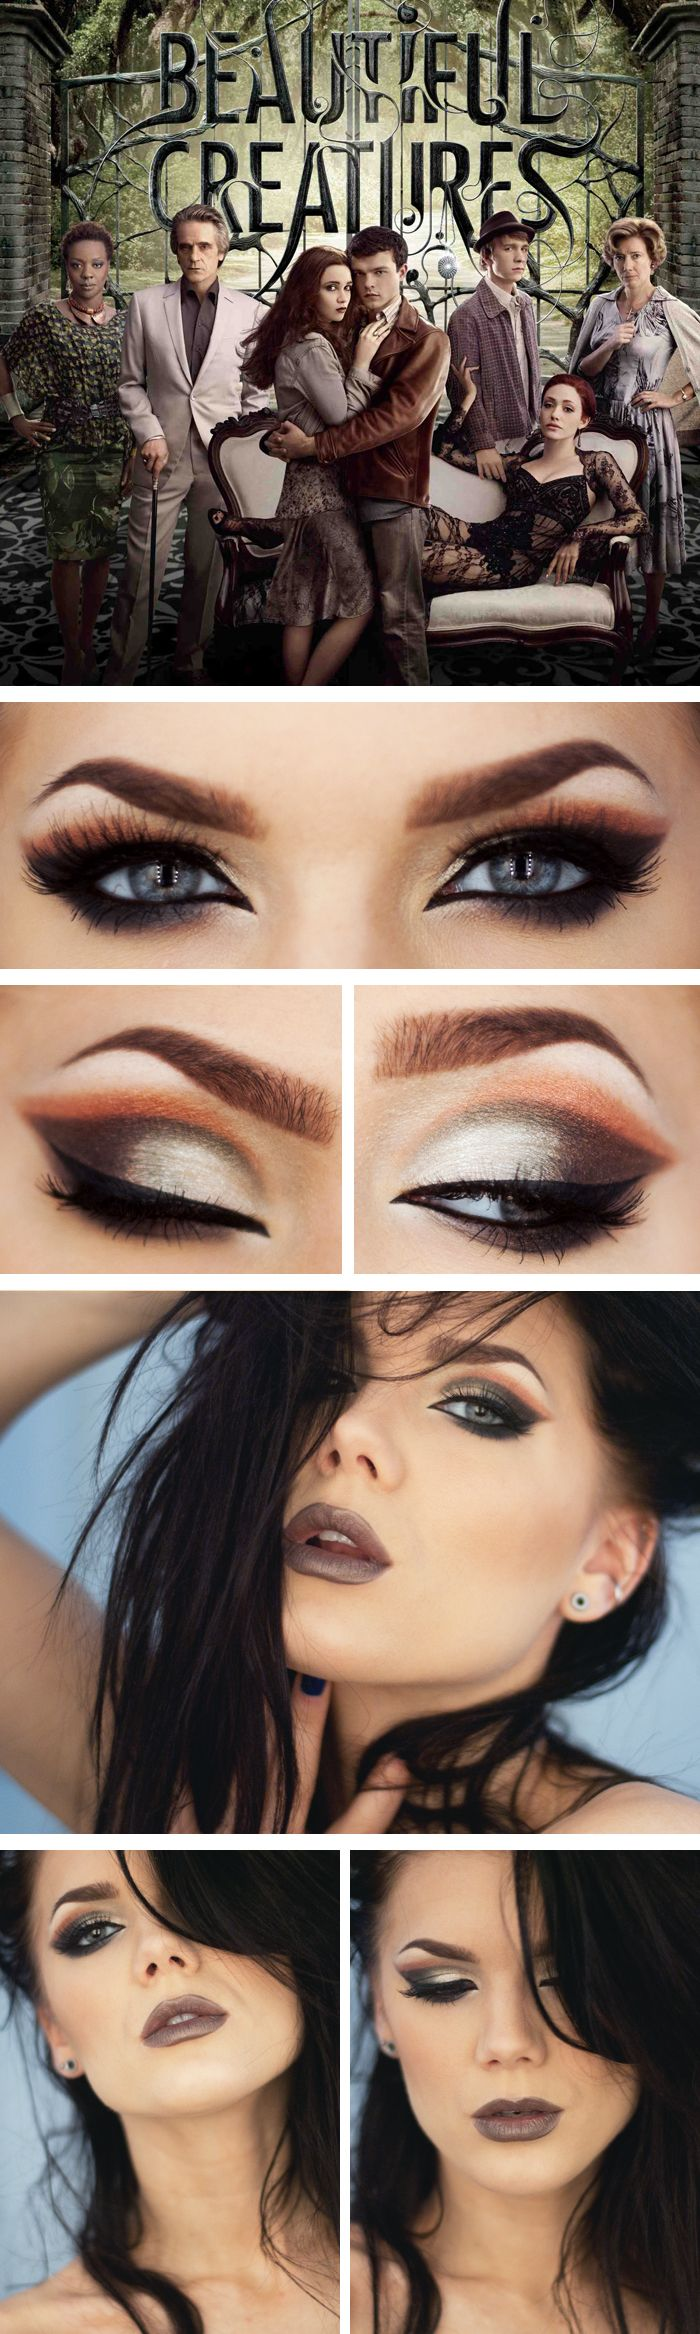 Beautiful Creatures inspired dramatic eyeshadow and face makeup look, using warm and cool color shadow and dark frosty lip, created by makeup artist Linda Hallberg